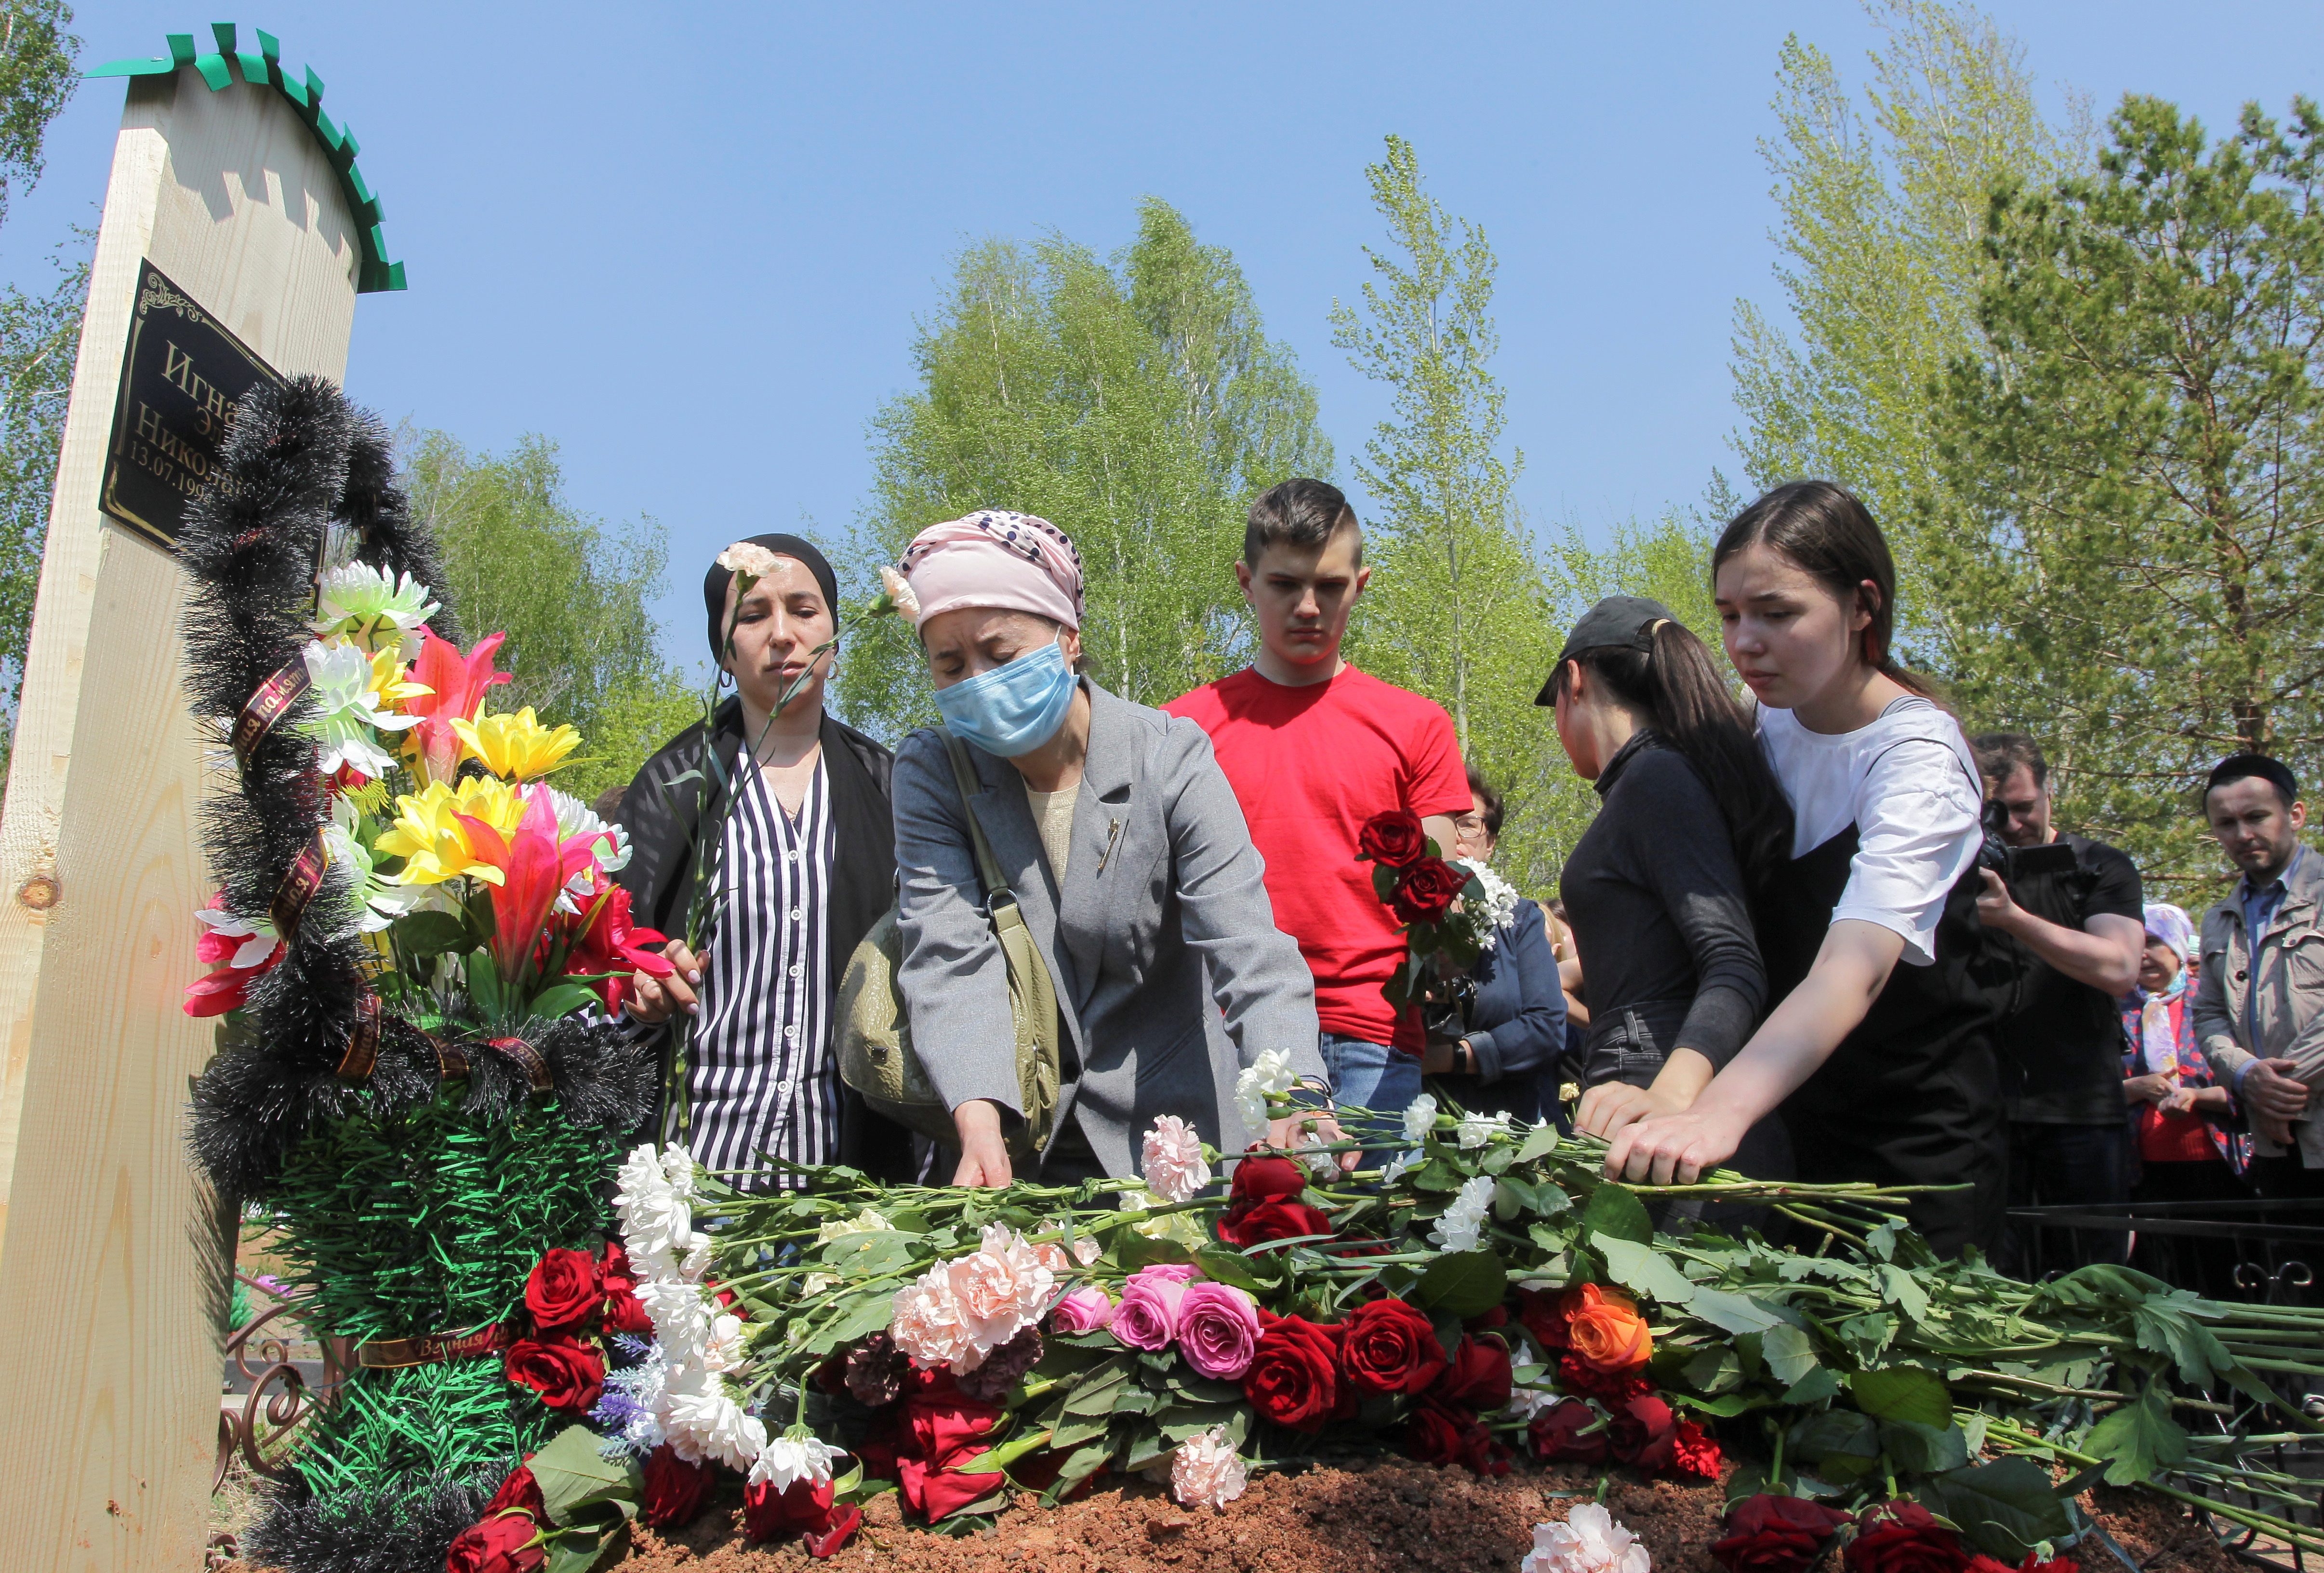 People mourn at the grave of Elvira Ignatieva, an English language teacher killed in the massacre at School Number 175, during a funeral at a cemetery in Kazan, Russia May 12, 2021. REUTERS/Alexey Nasyrov